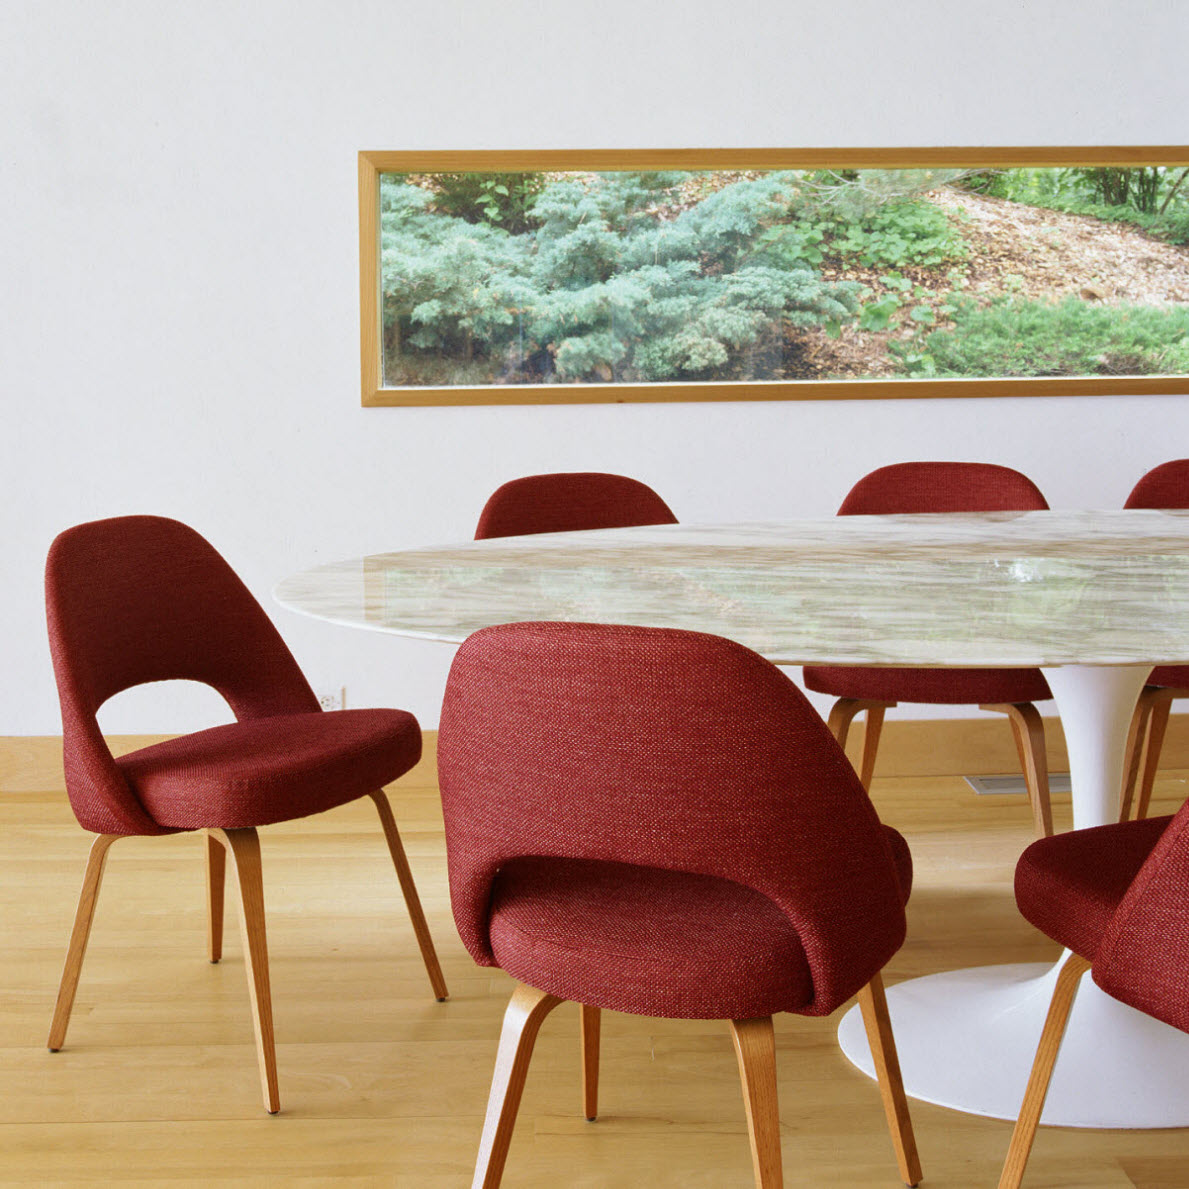 Knoll Saarinen Large Oval Dining Table at The Human Solution : knoll saarinen large oval dining table 10 from www.thehumansolution.com size 1189 x 1189 jpeg 267kB